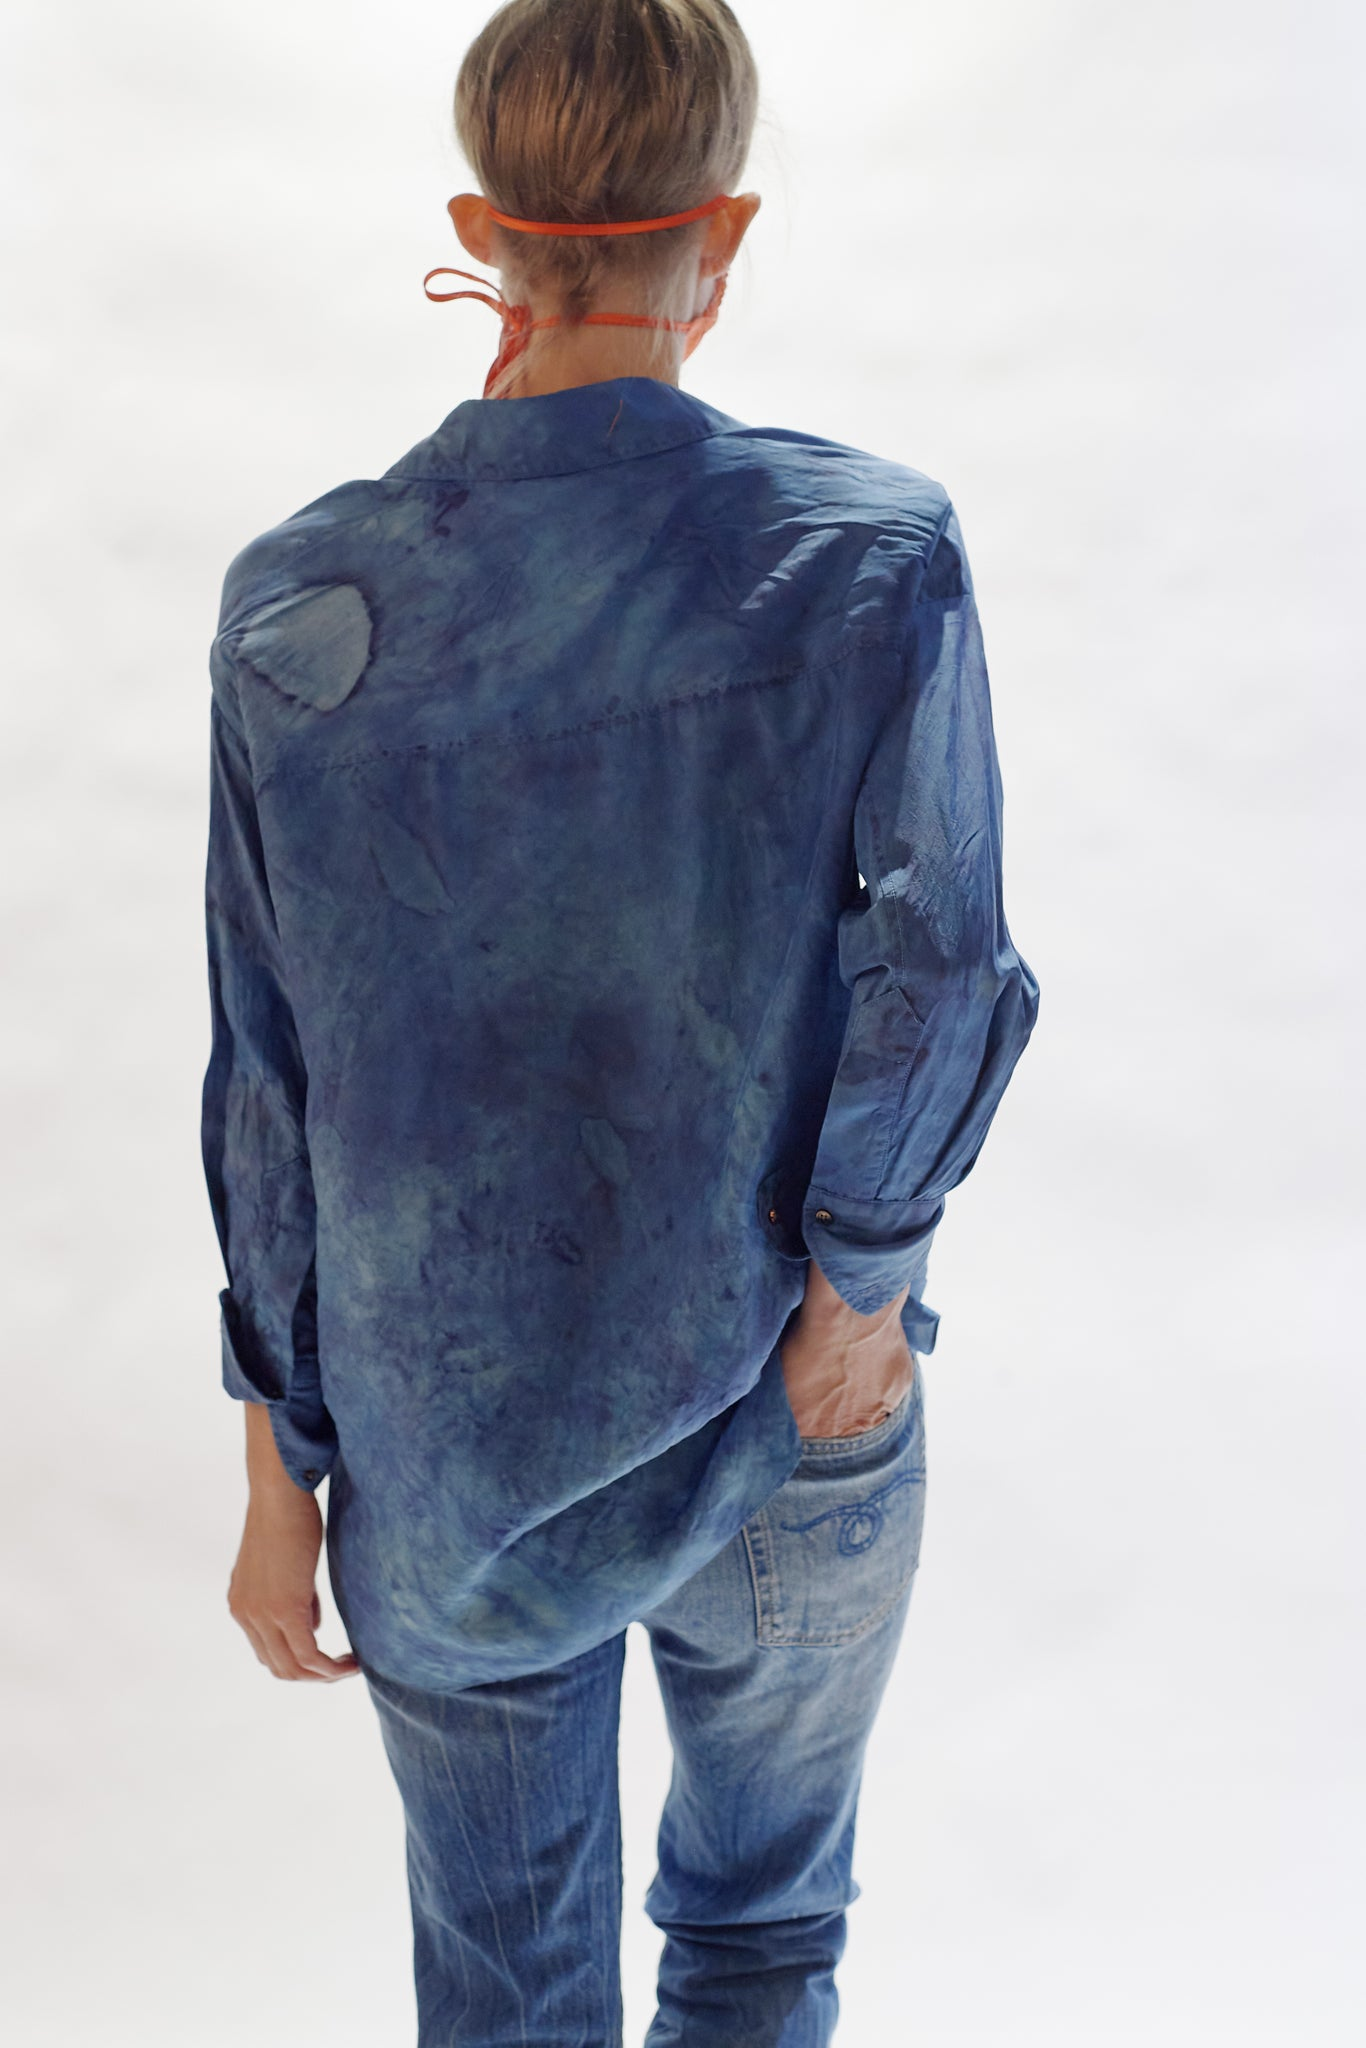 KES Oversized Men Button Down - Organic Indigo